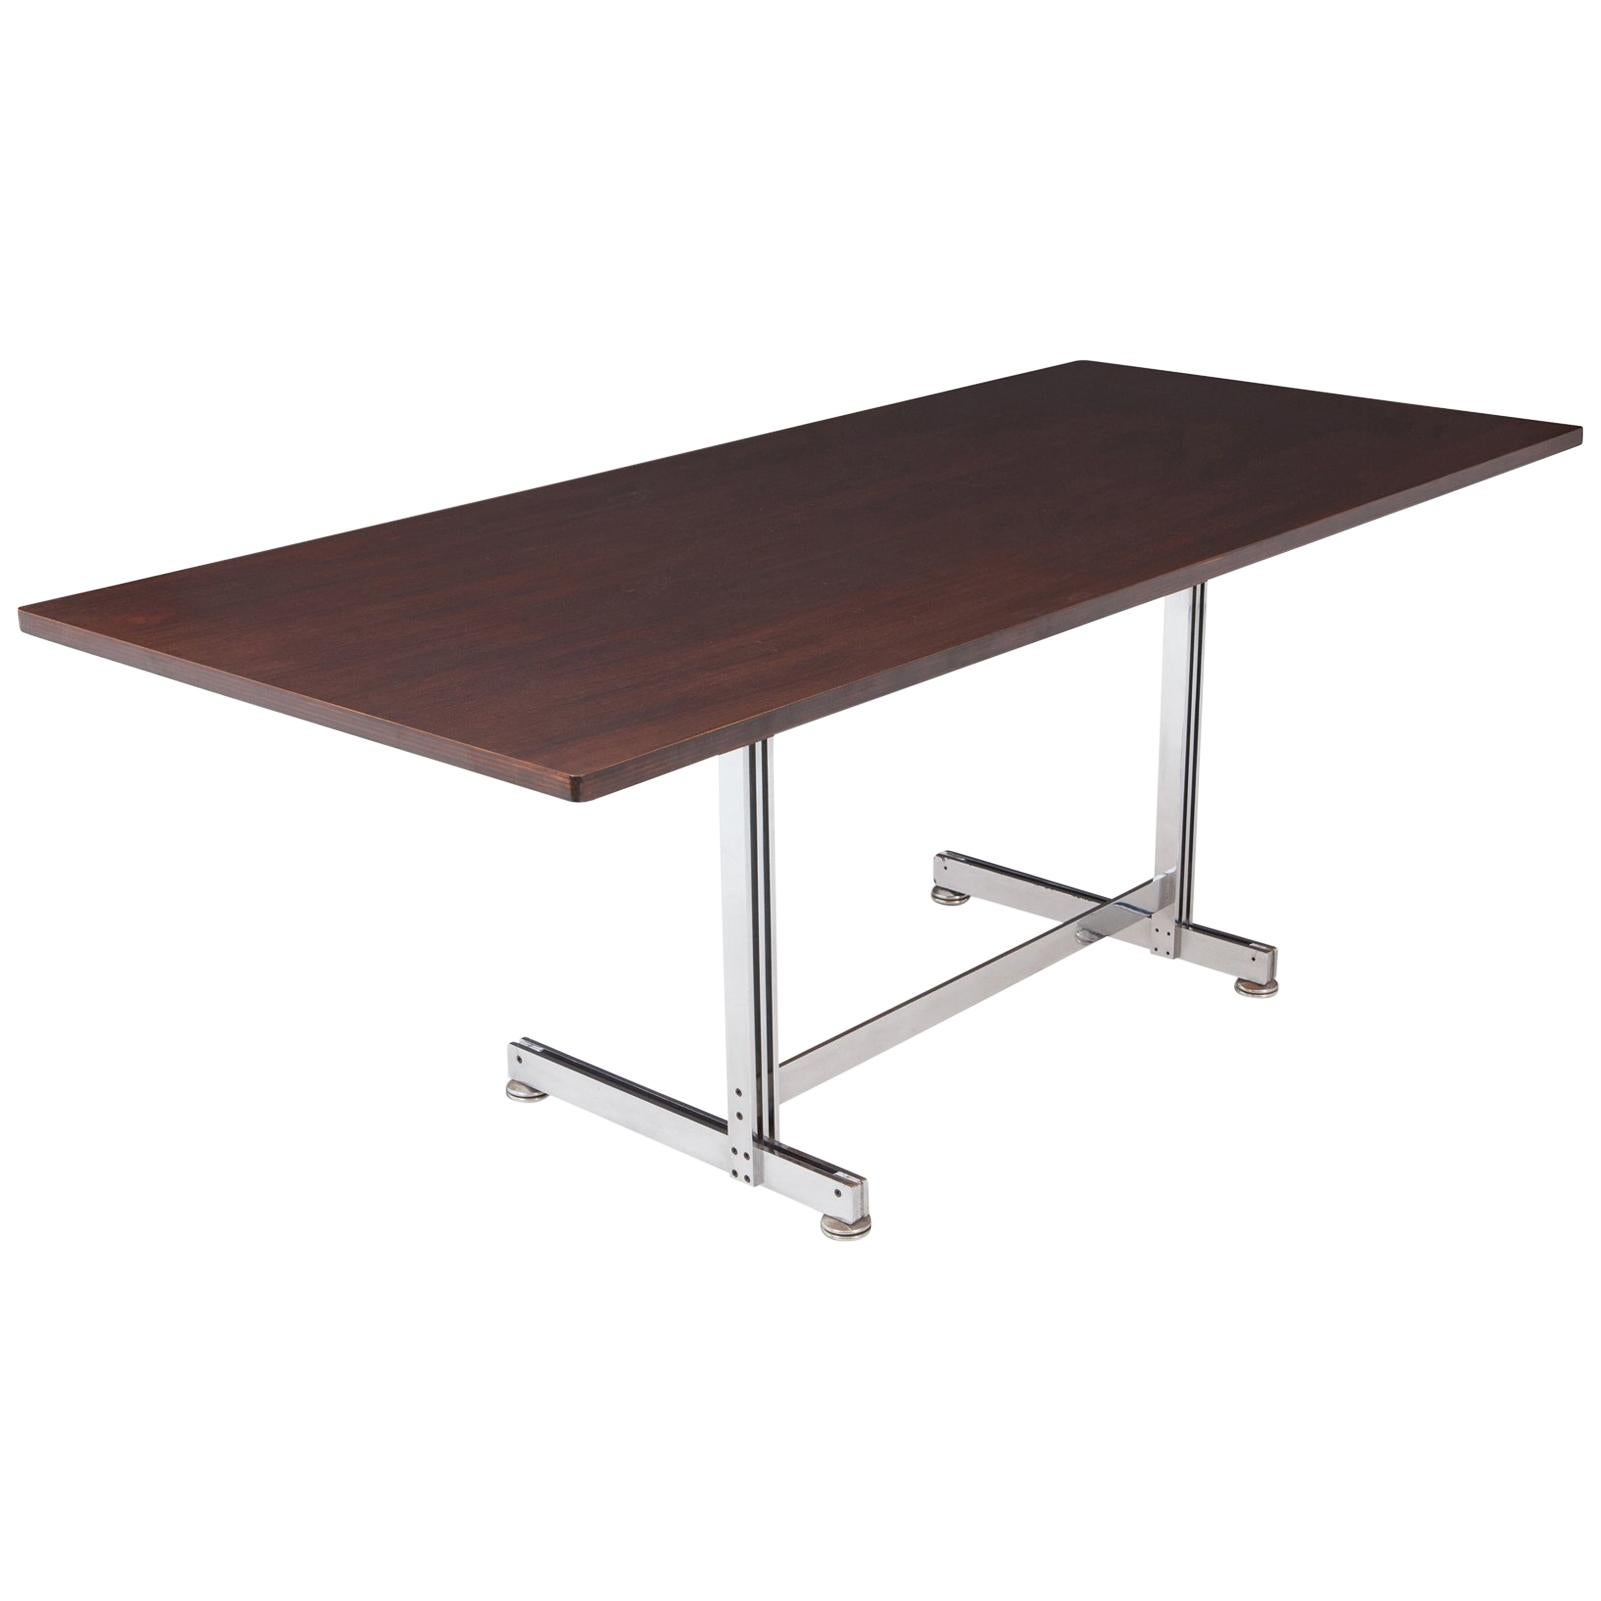 Jules Wabbes Mahogany Desk Table for Mobilier Universel